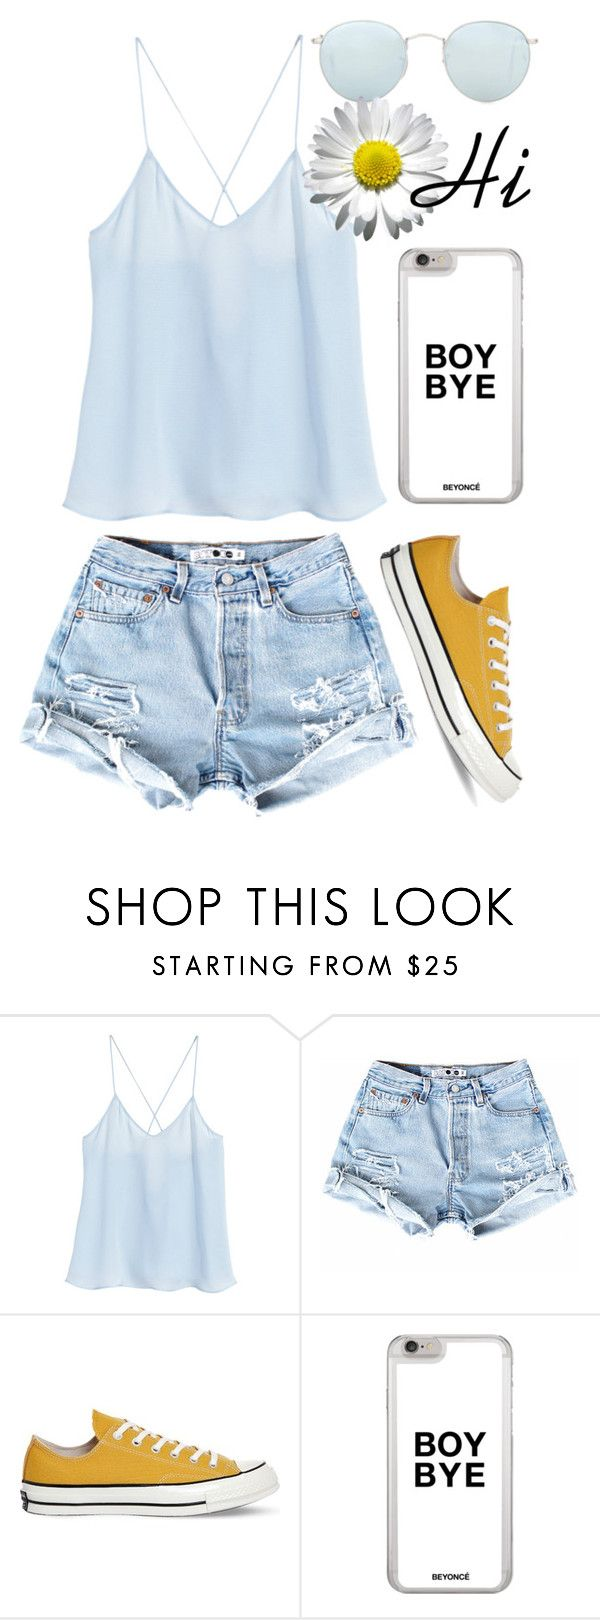 """""""Untitled #141"""" by travel-out ❤ liked on Polyvore featuring H&M, Converse and Ray-Ban"""